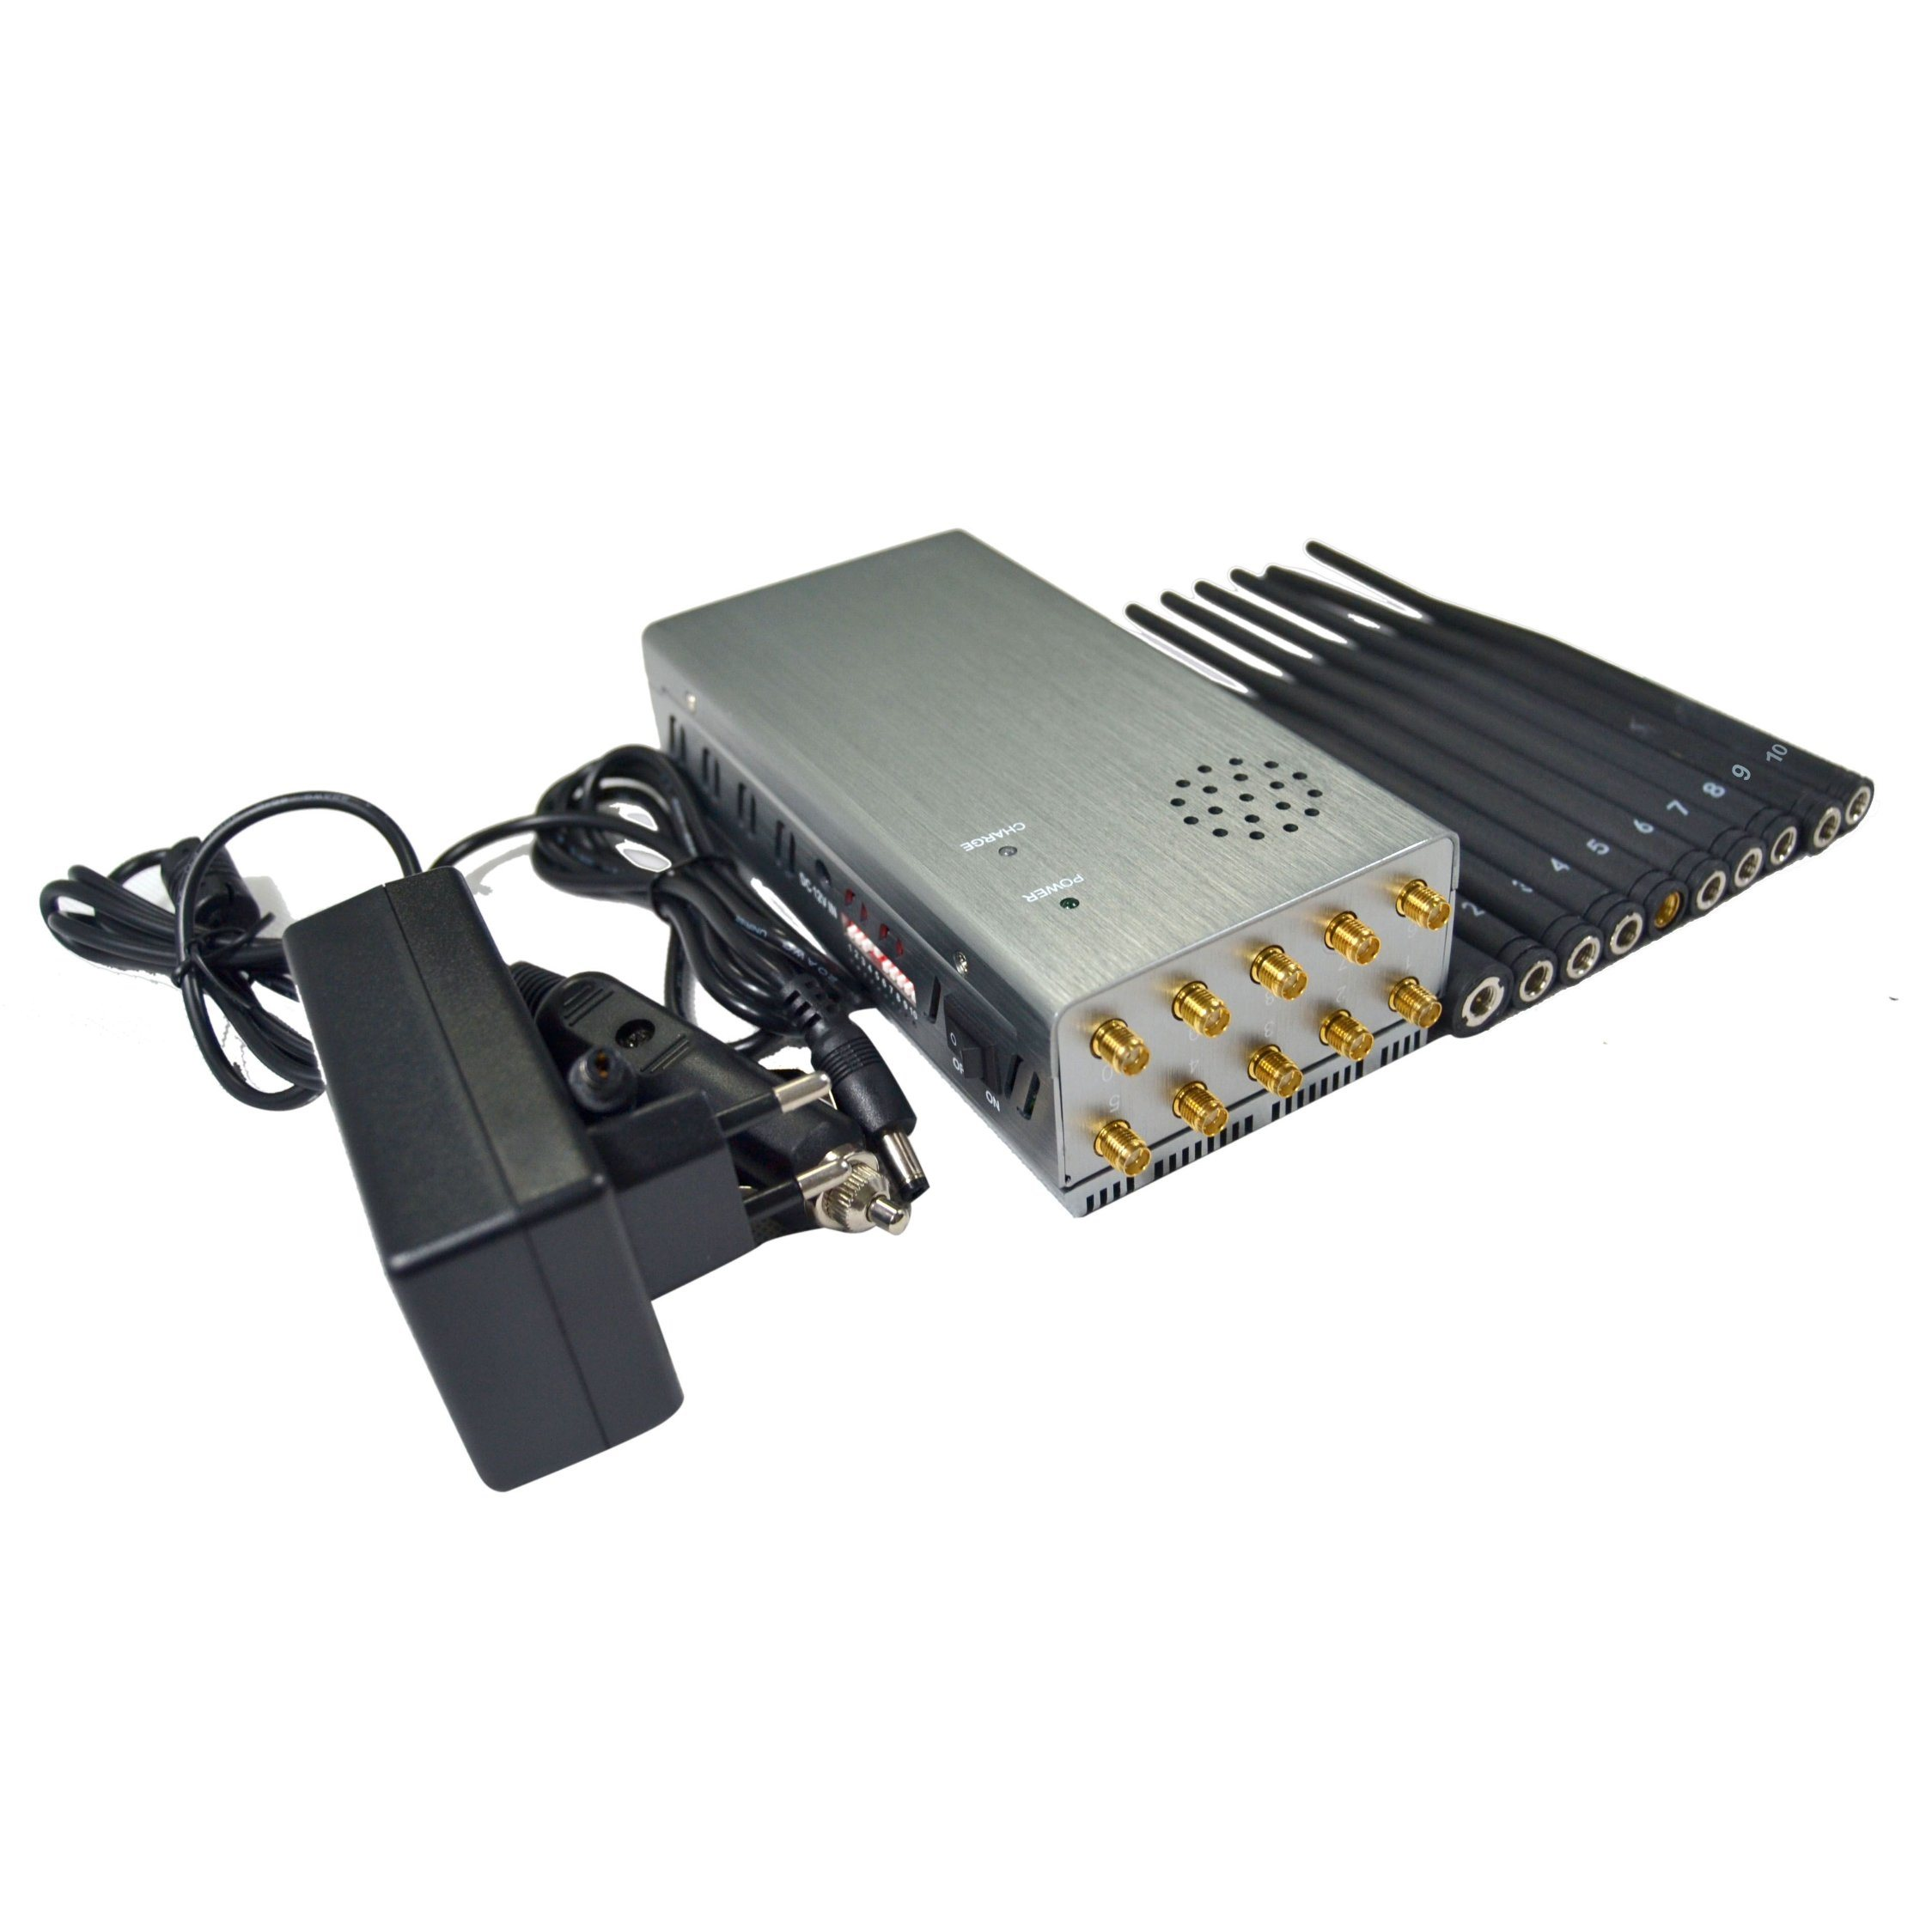 mobile phone blocker Seagraves - China The King of Portable Jammers with 8000mA and 10 Antennas Including 2g 3G 4G 5g GPS 433MHz315MHz868MHz WiFi - China 8000mA Battery Jammer, Large Volume Power Signal Blocker